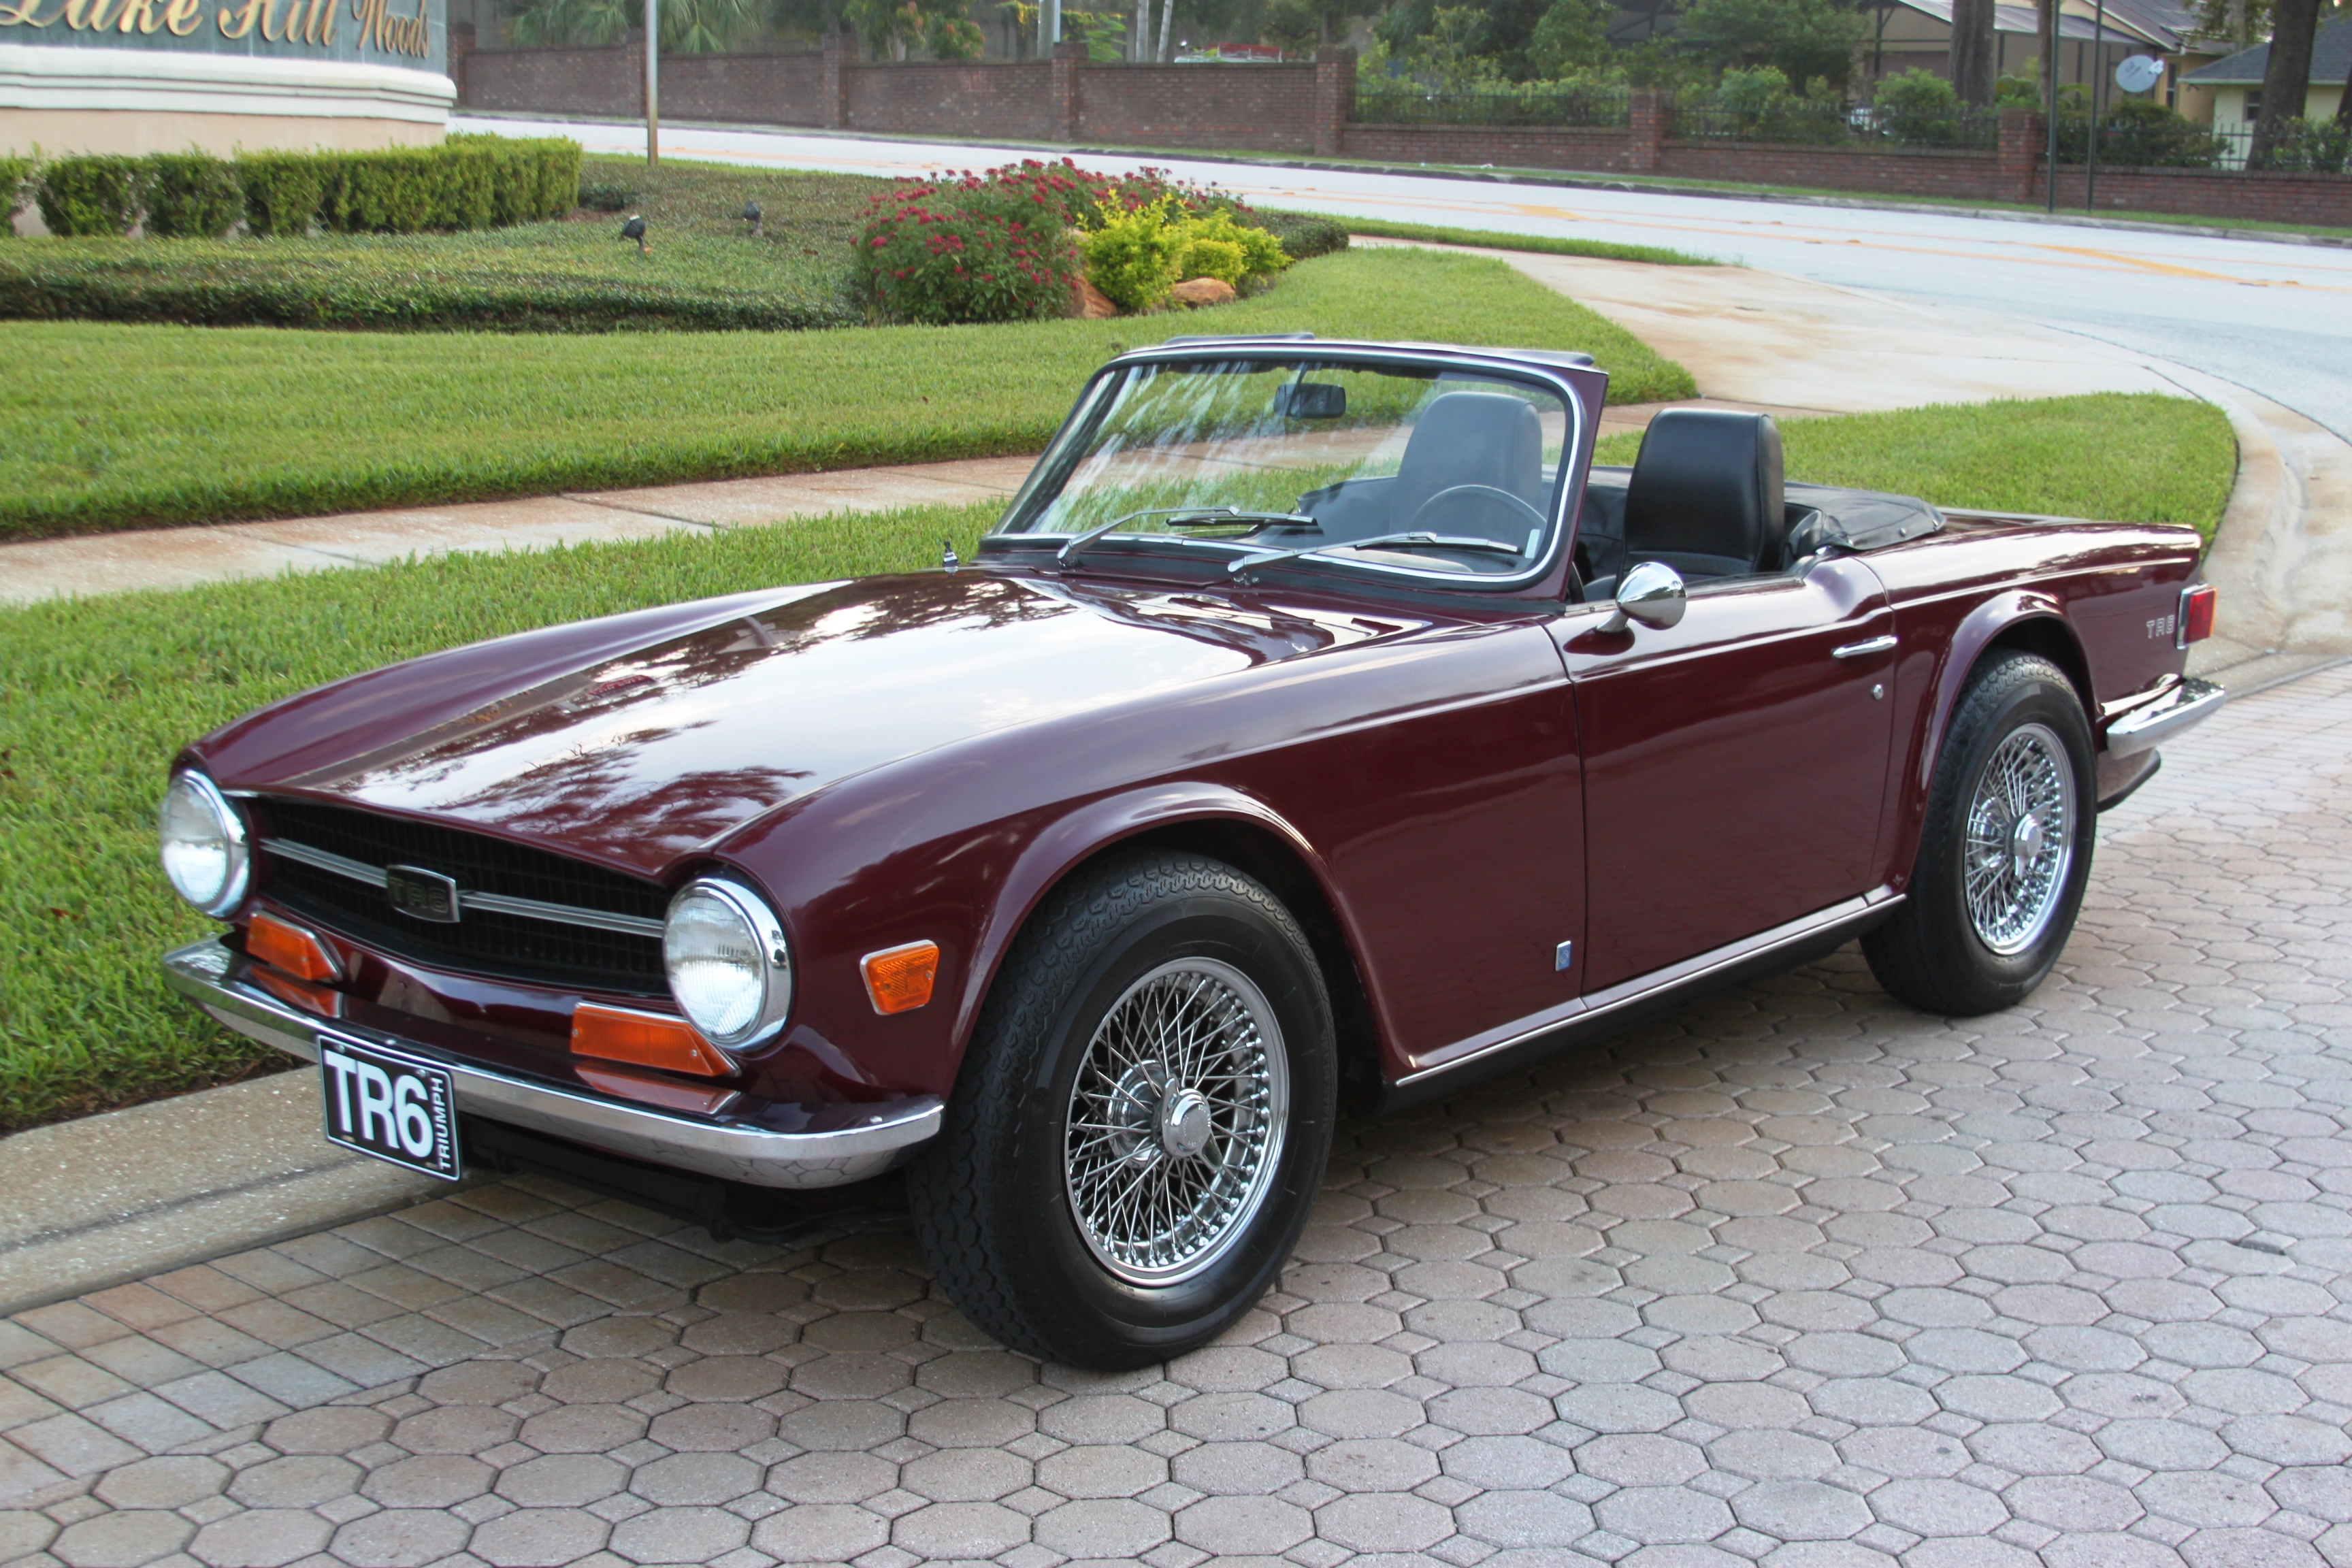 1969 triumph tr6 first year for the tr6 sold vantage sports cars vantage sports cars. Black Bedroom Furniture Sets. Home Design Ideas